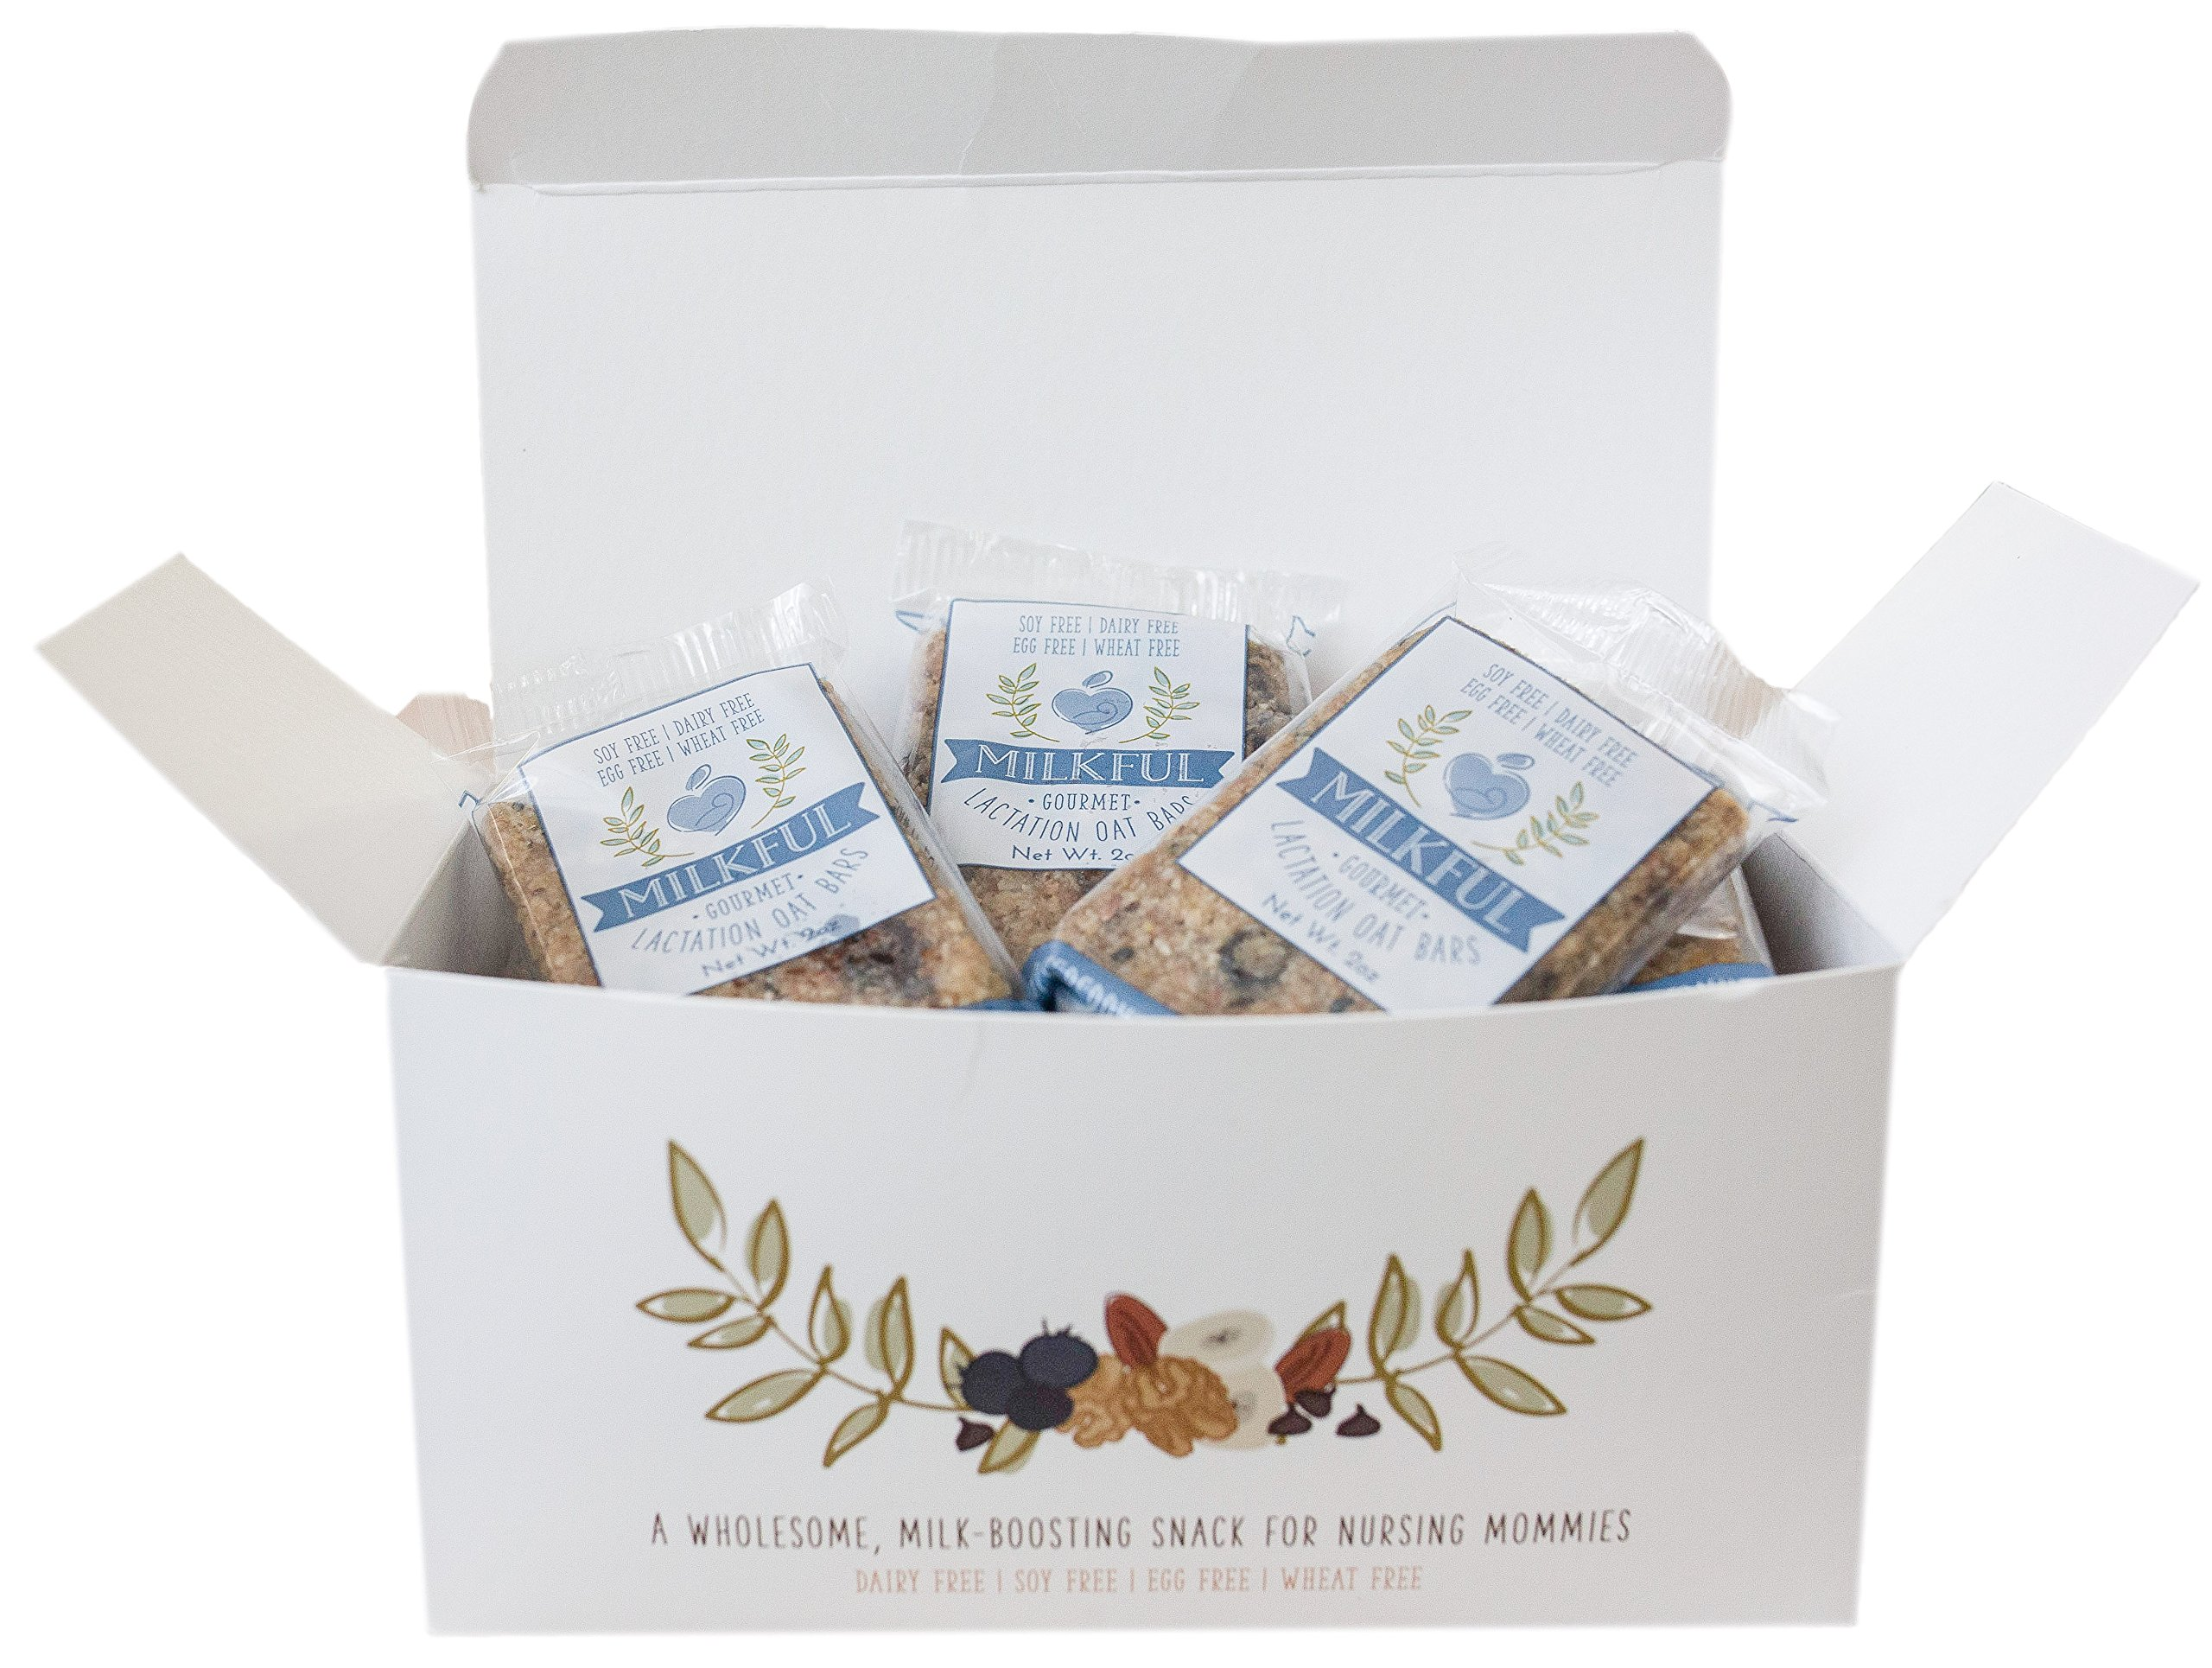 MILKFUL Lactation Bars, wholesome & delicious snack to increase breast milk supply. 12 Bars. (Dairy Free, Egg Free, Soy Free, Wheat Free) (Blueberry Almond Coconut) by MILKFUL